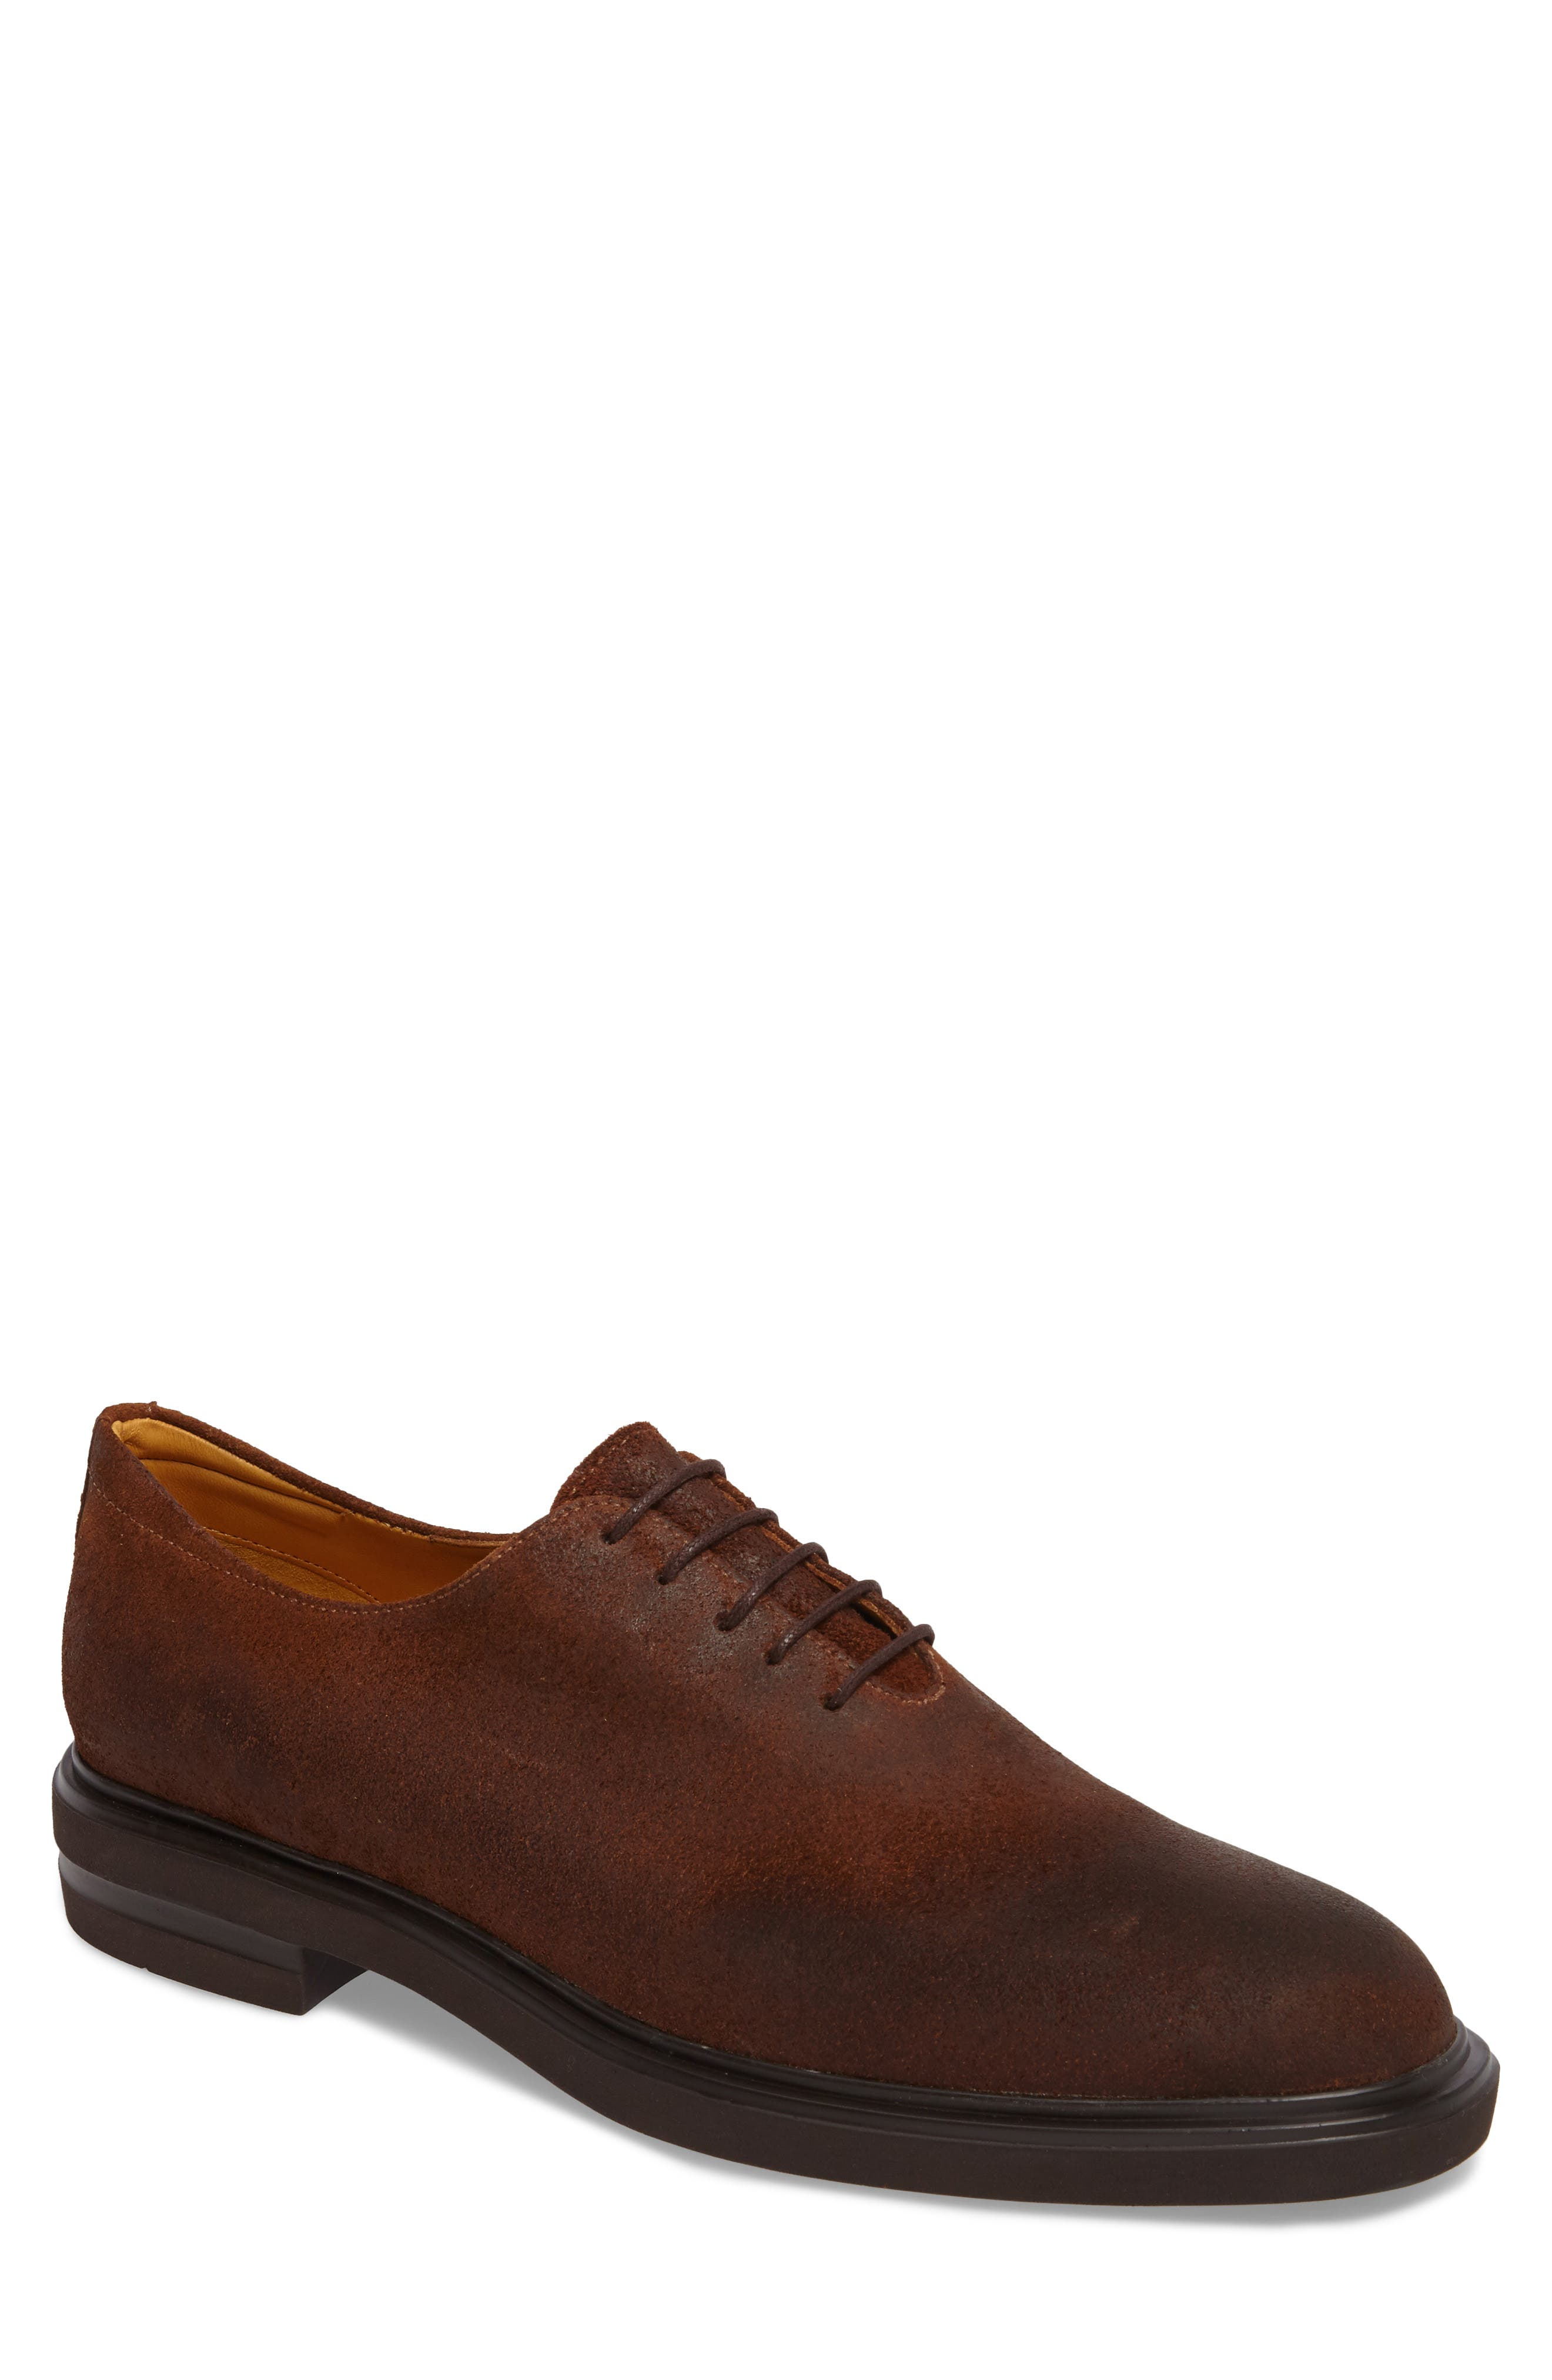 Donald J Pliner Eduardo Plain Toe Oxford (Men)